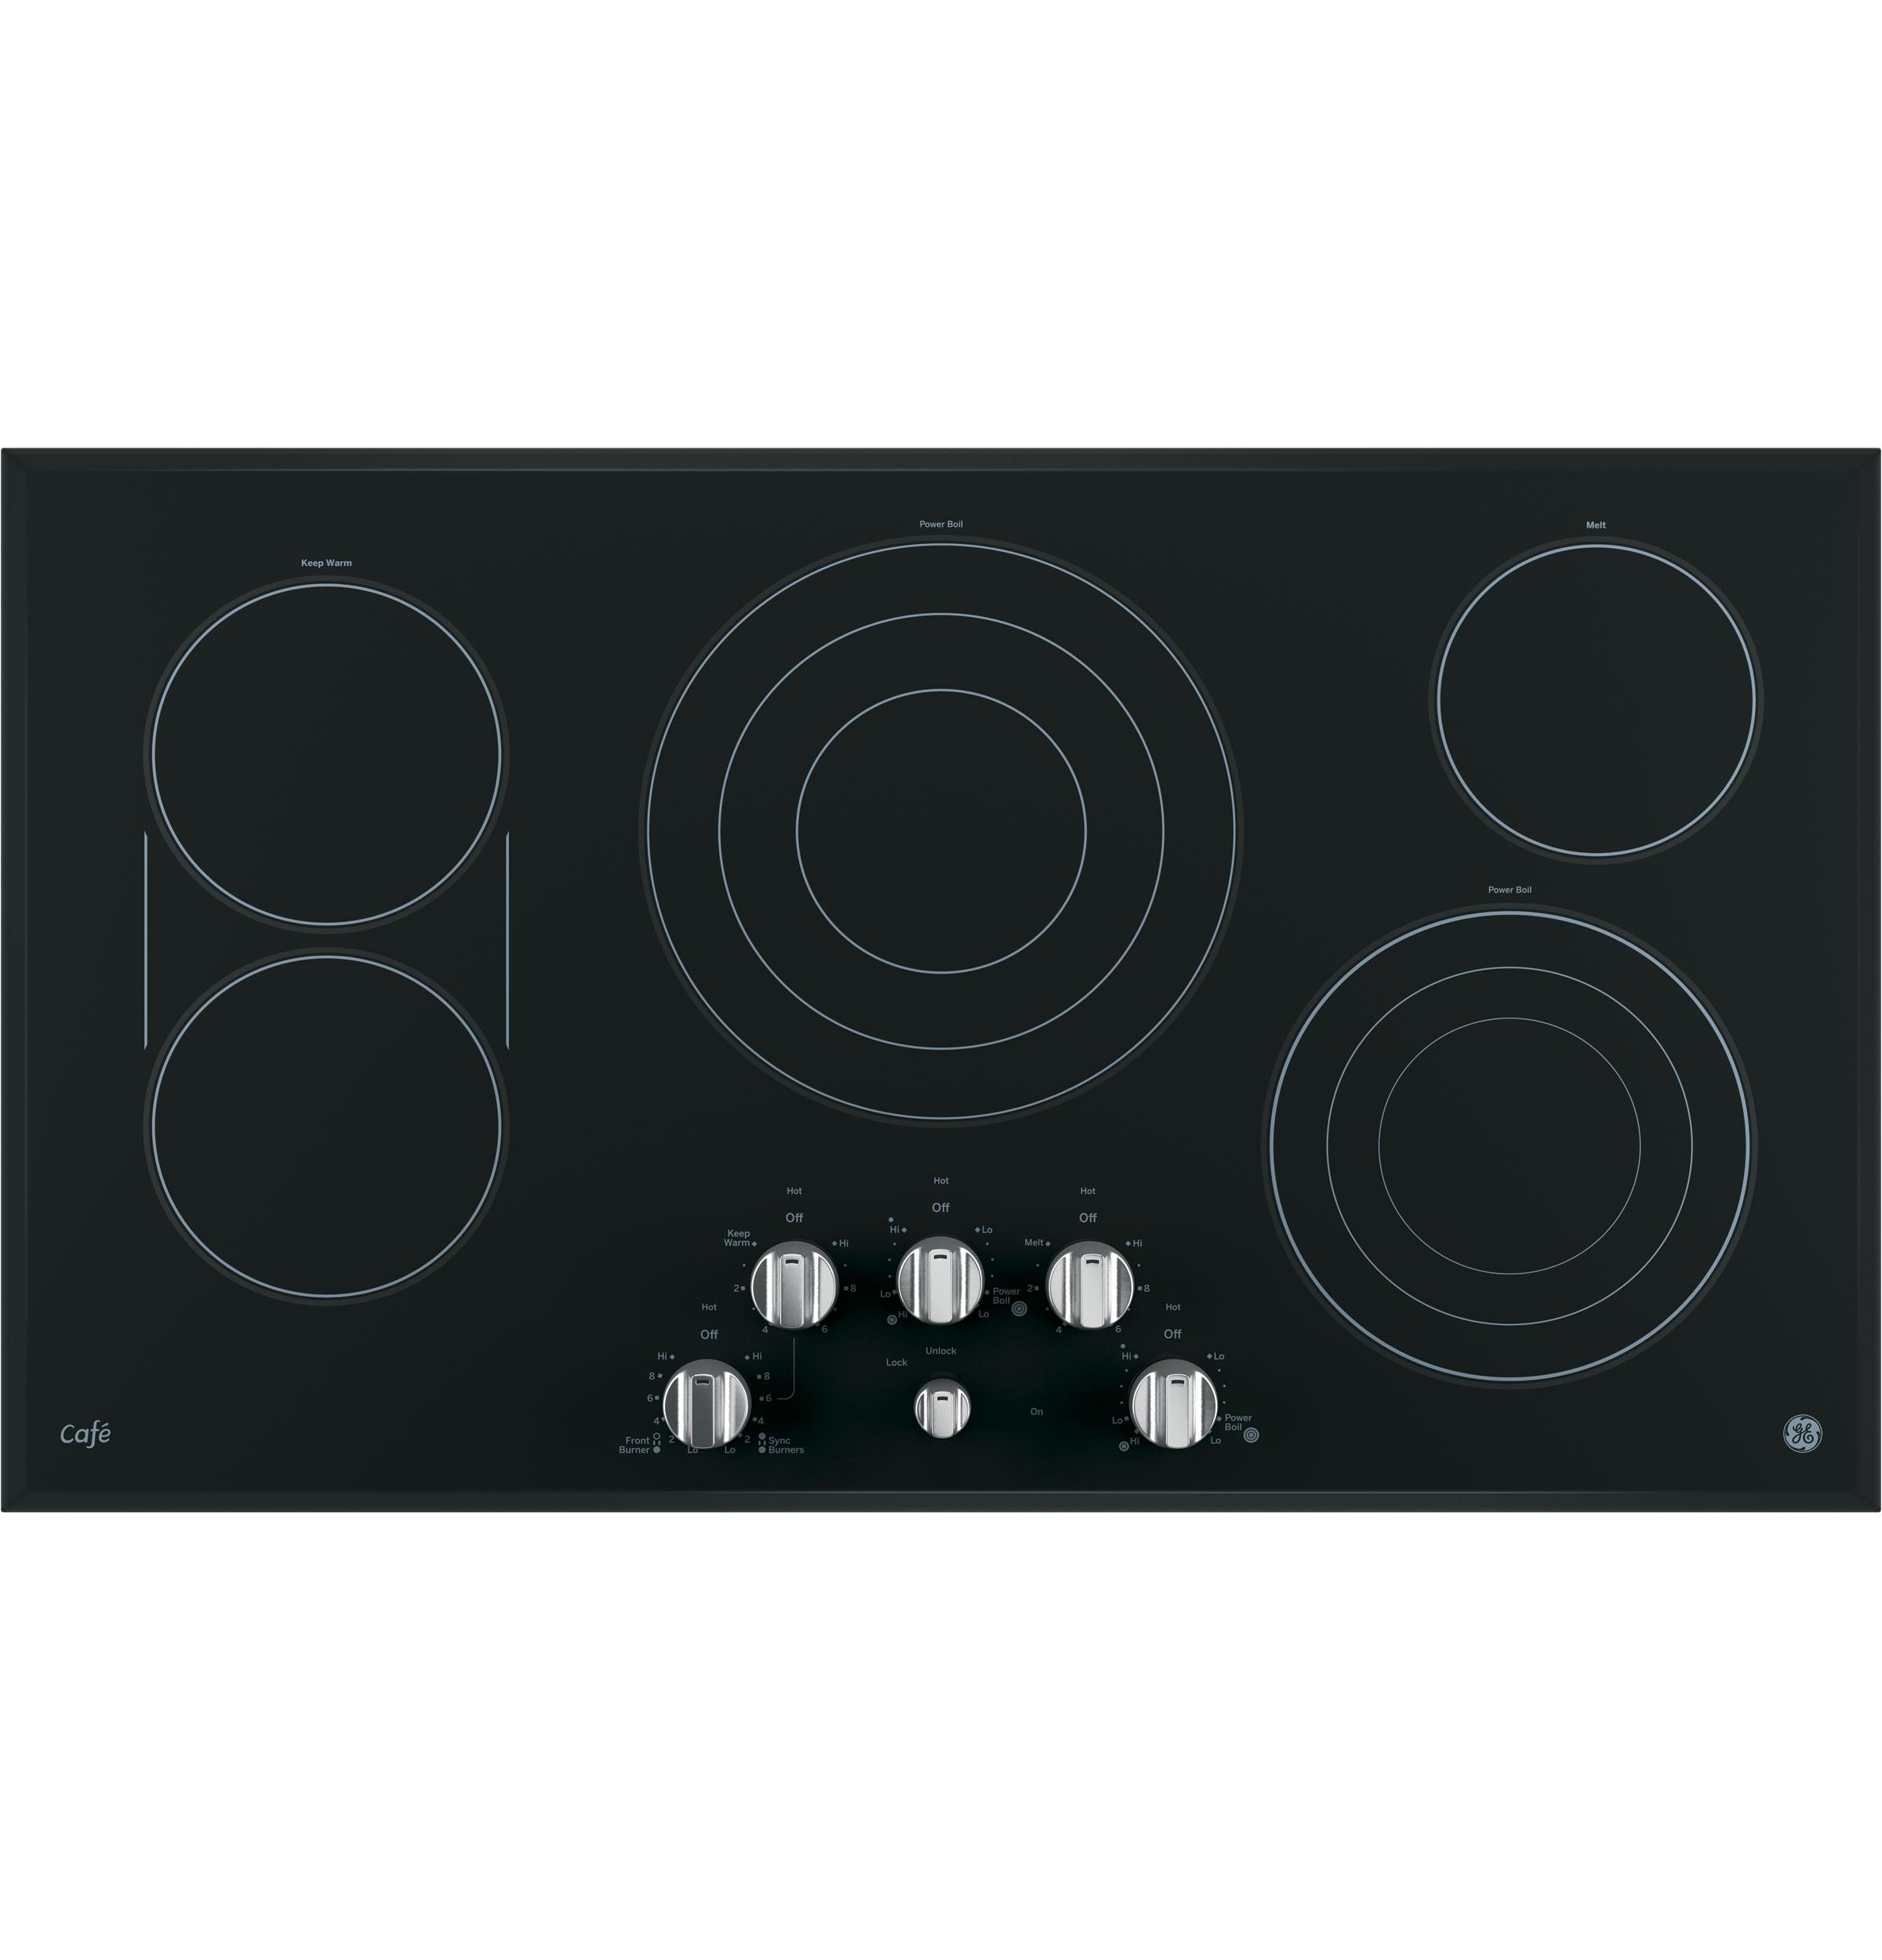 "GE Cafe(TM) Series 36"" Built-In Knob Control Electric Cooktop